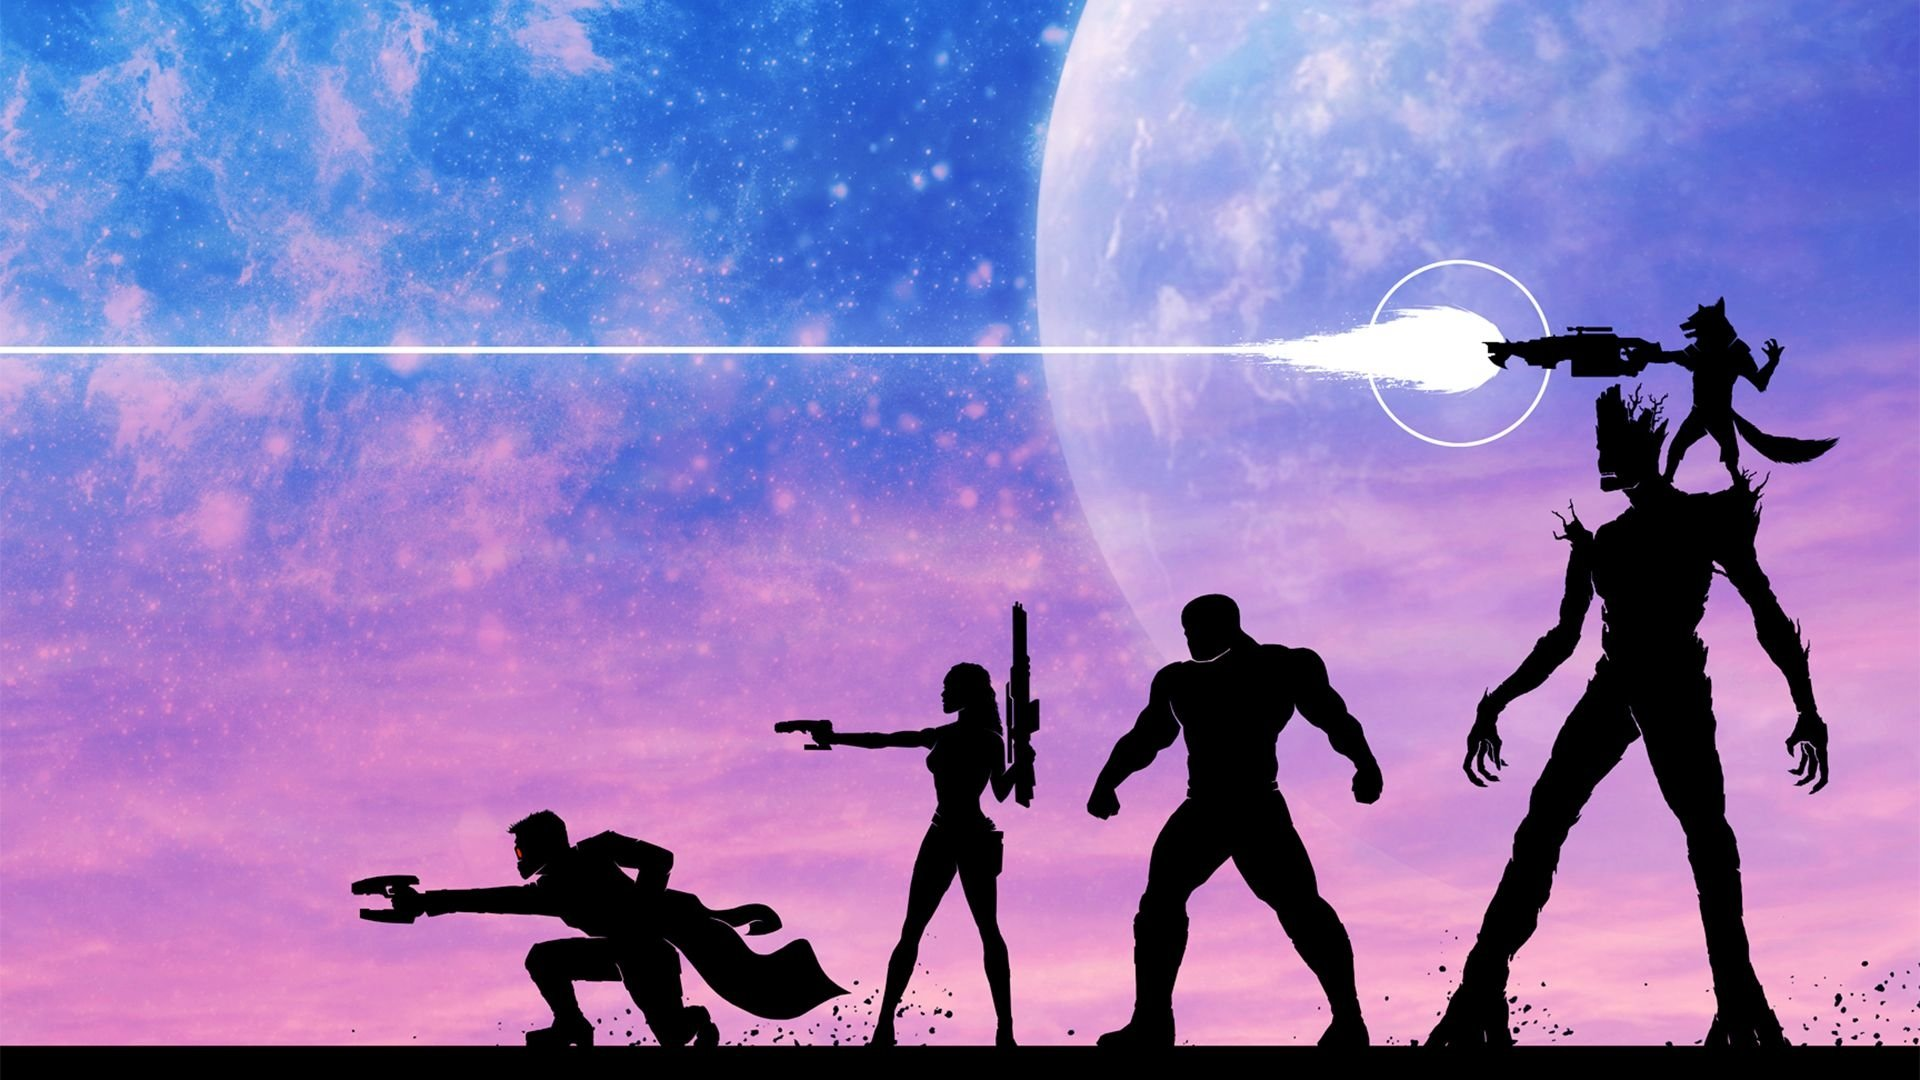 Wallpapers Id - - Guardians Of The Galaxy , HD Wallpaper & Backgrounds